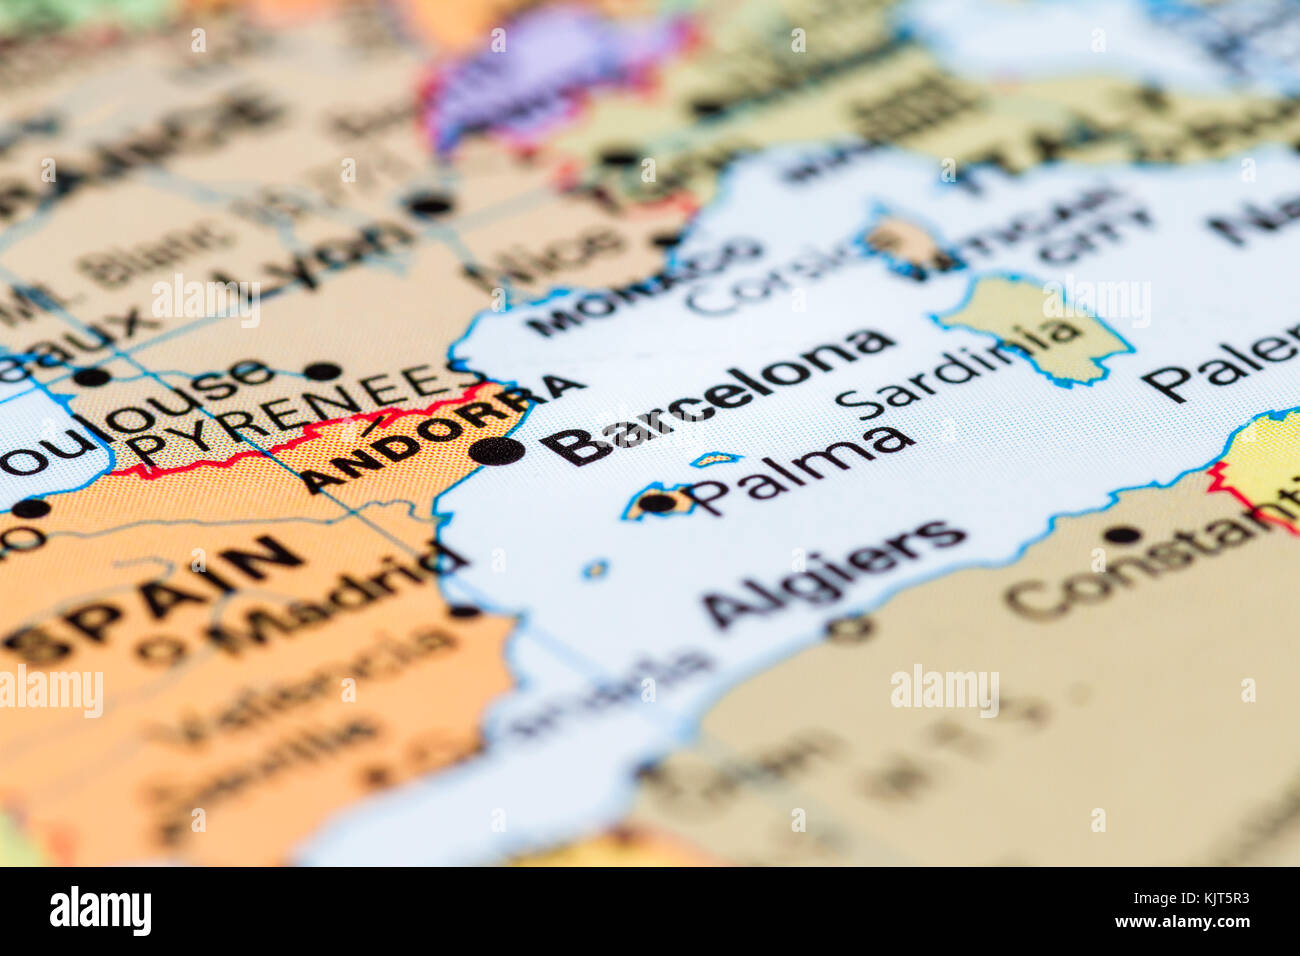 Close Up Of A World Map With Barcelona In Focus Stock Photo Alamy